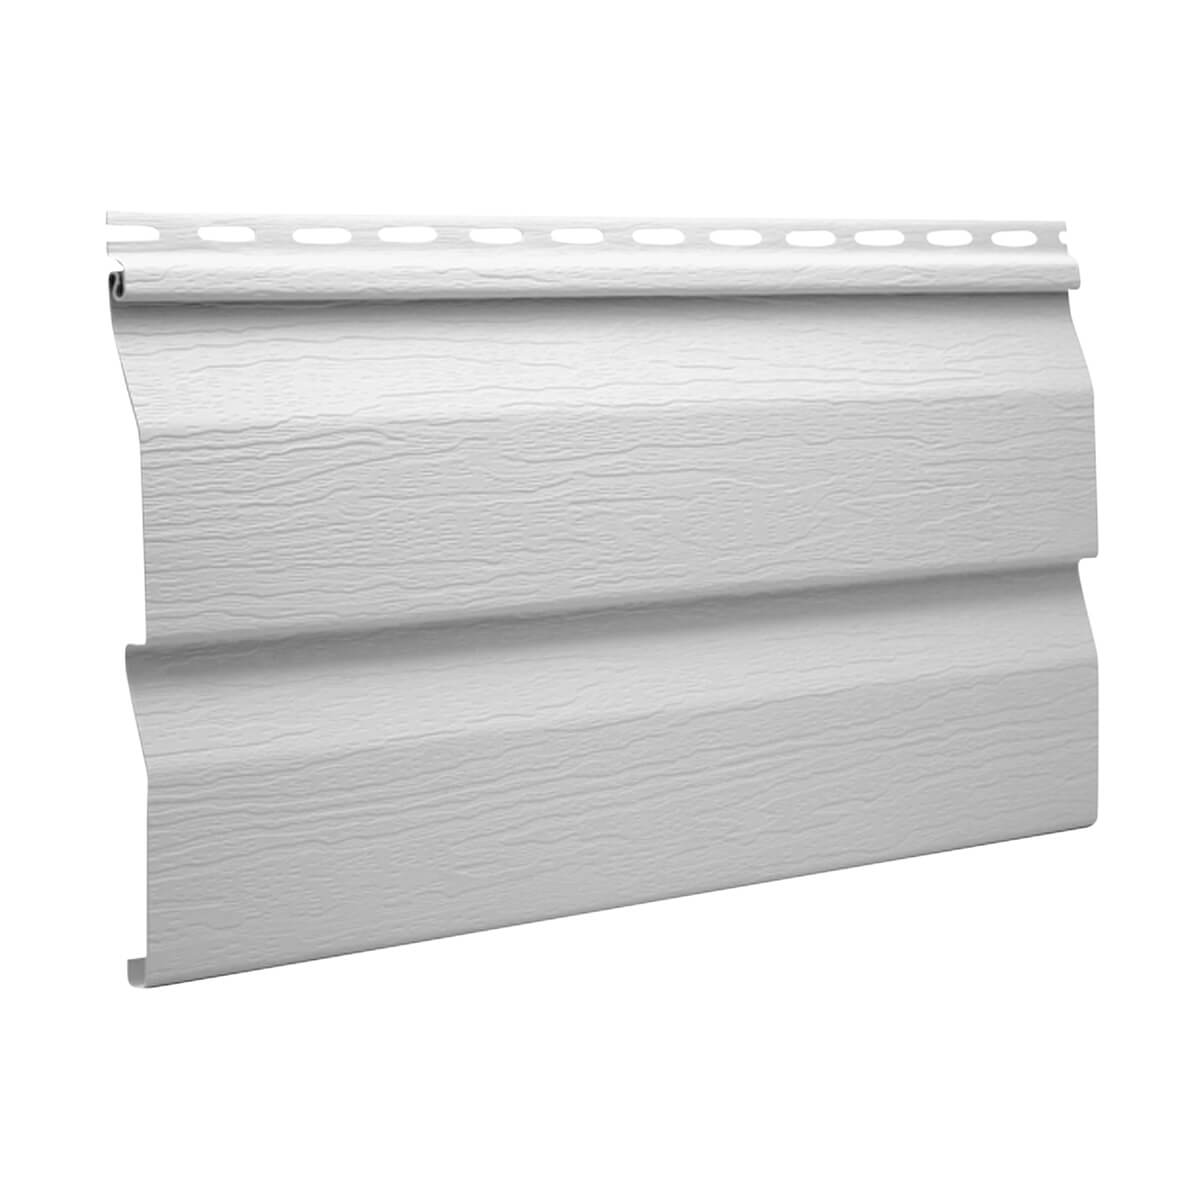 Kaycan Aluminum Drip Cap - 2-in x 9-ft10-in - Wolf White